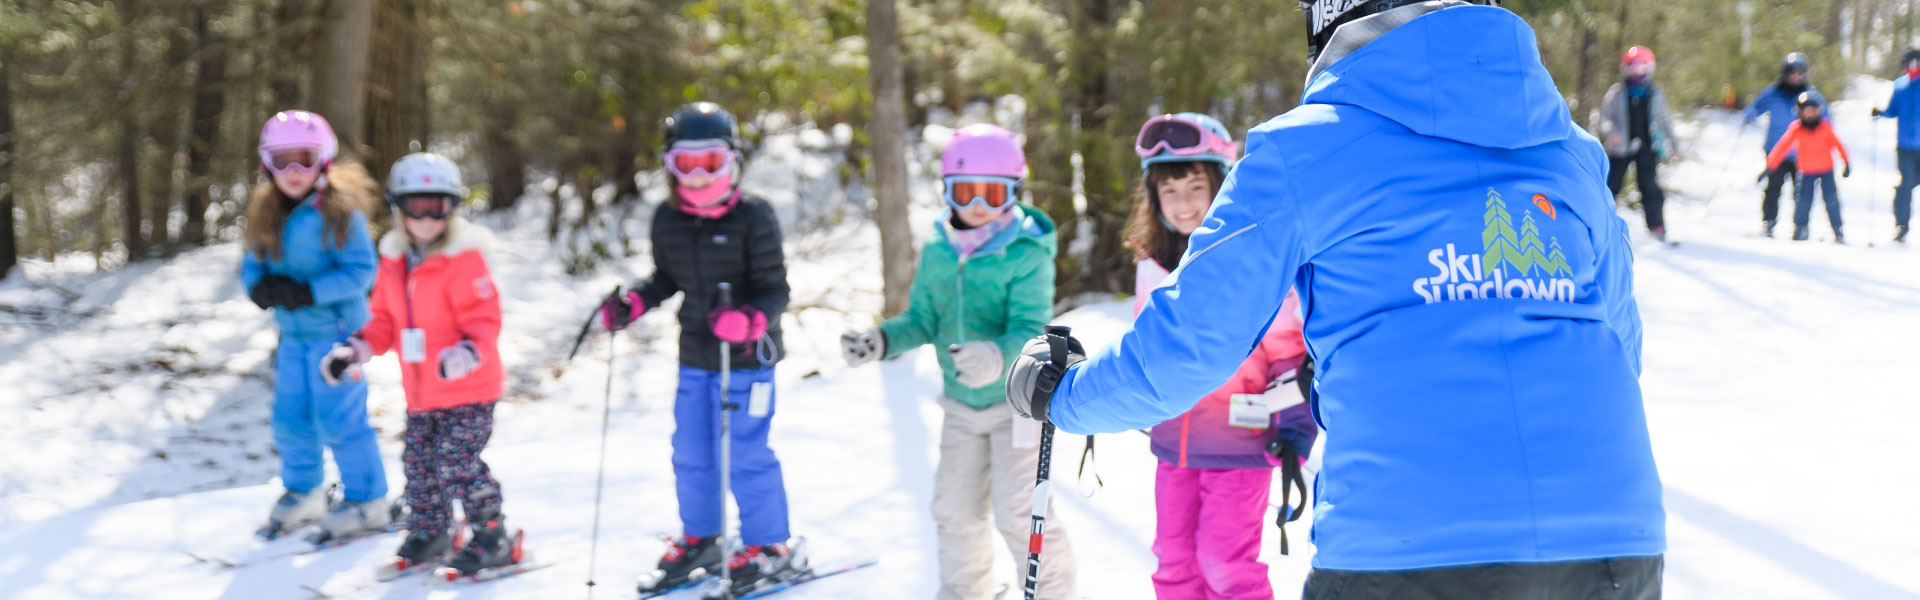 Instructor with a group of skiers